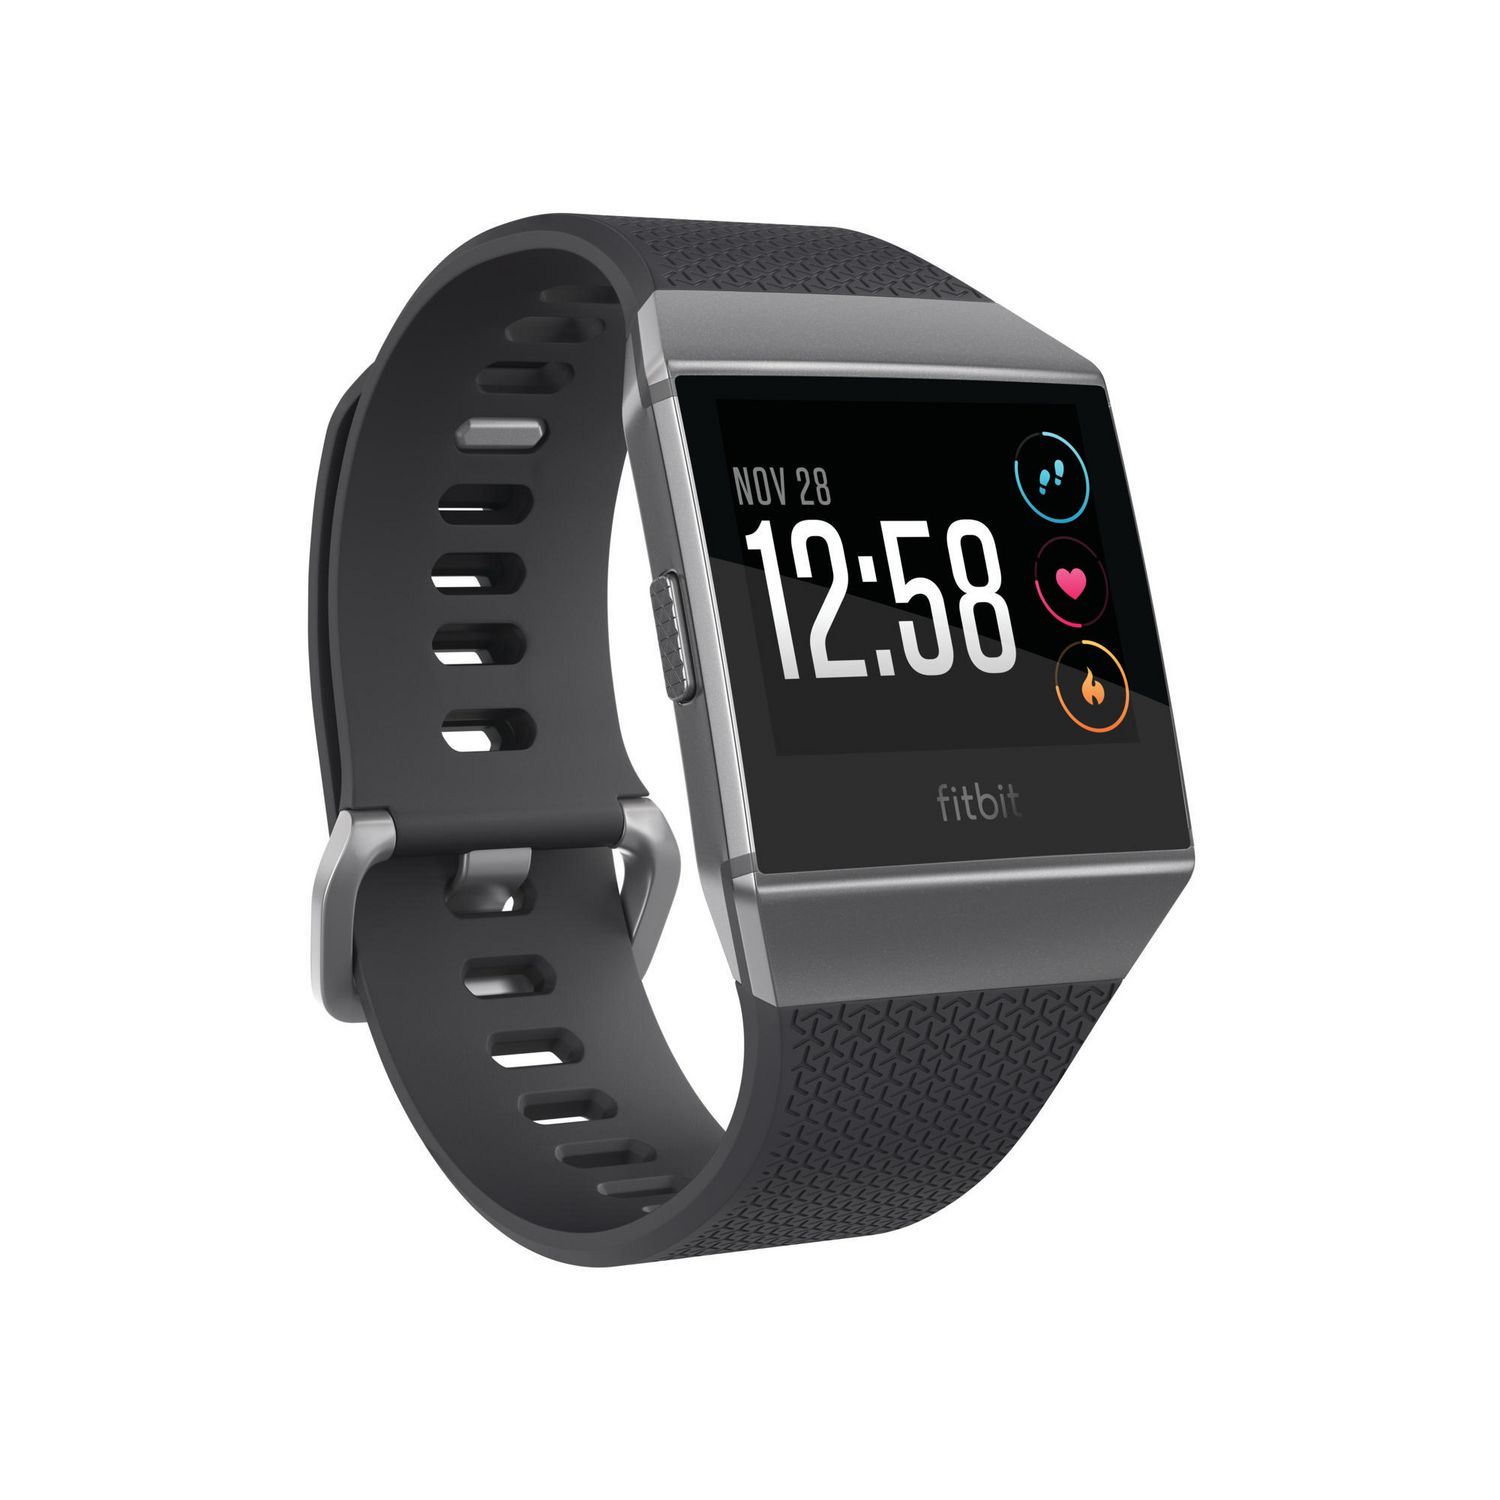 Fitbit Ionic smartwatch with grey aluminum case and rubber black band - best Fitbit for swim tracking